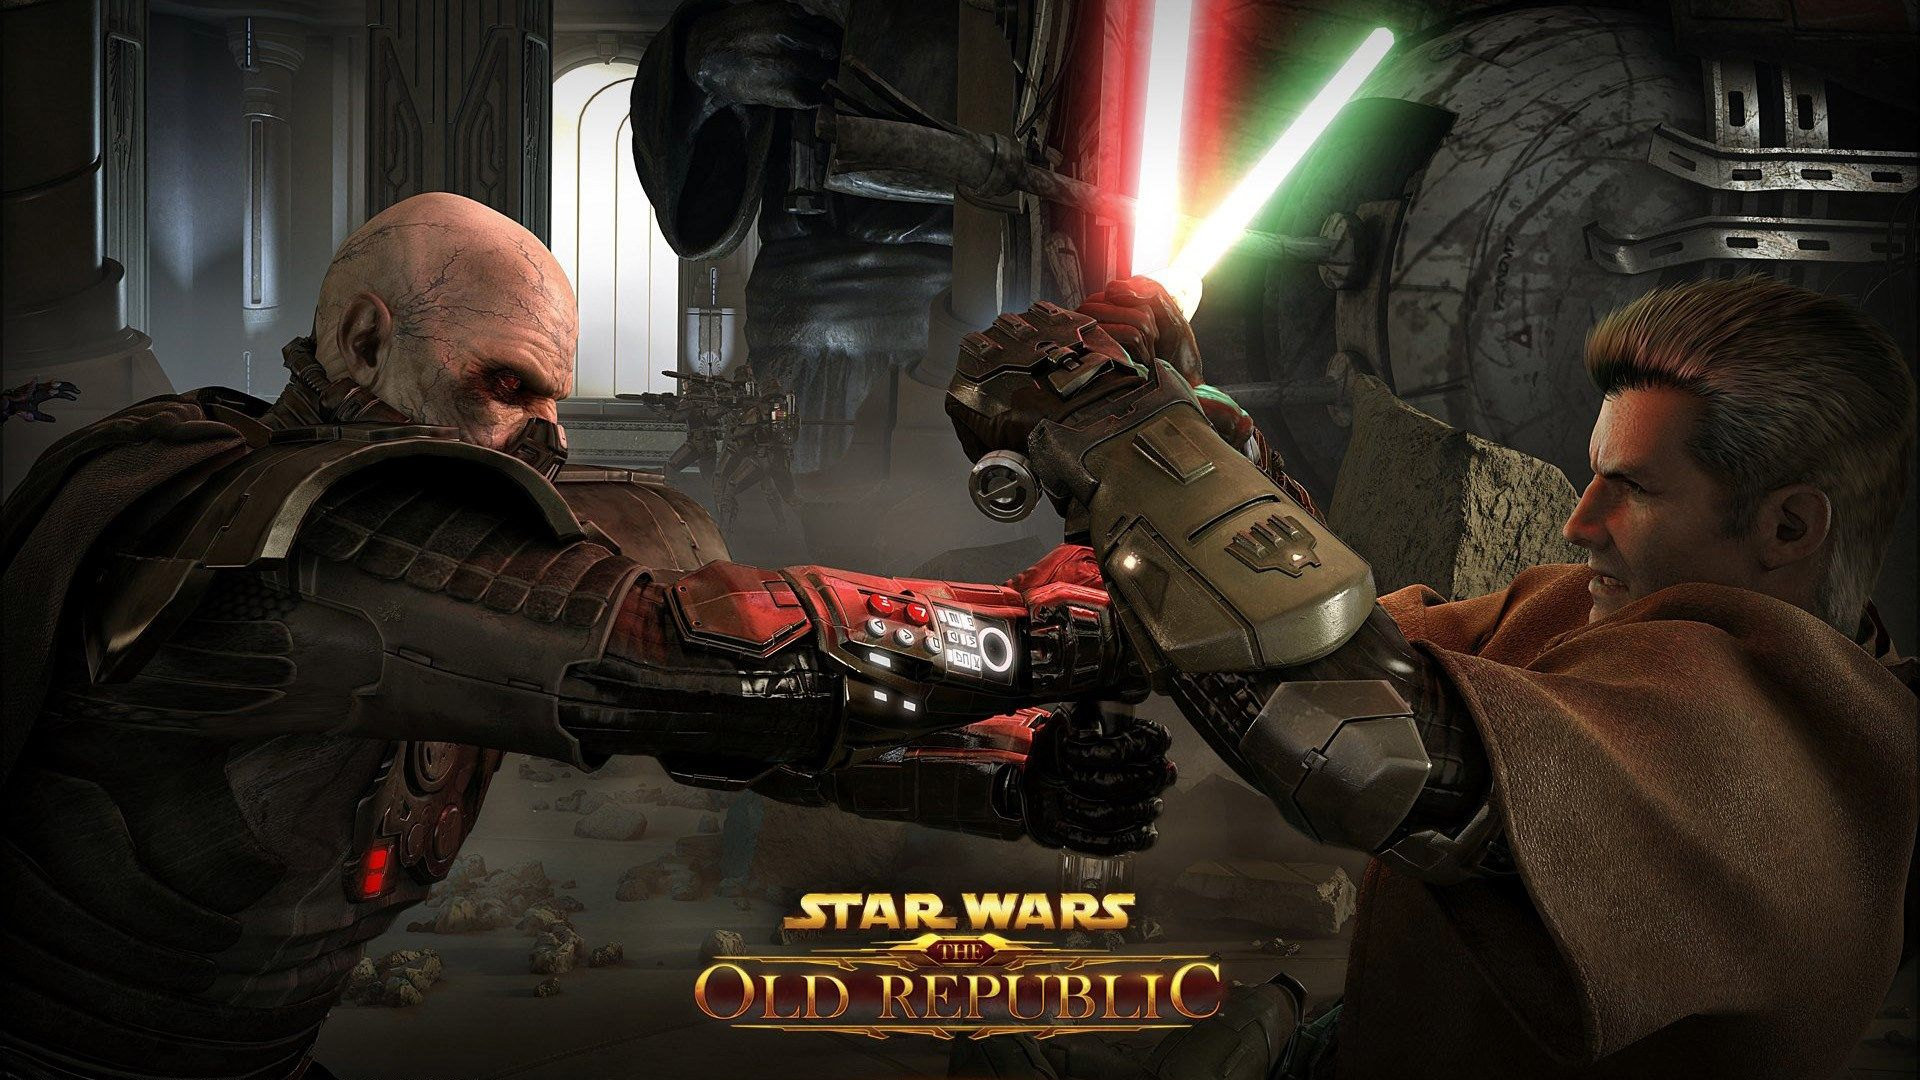 Star Wars The Old Republic Wallpaper Collection 1920x1080 Star Wars The Old The Old Republic Star Wars Wallpaper